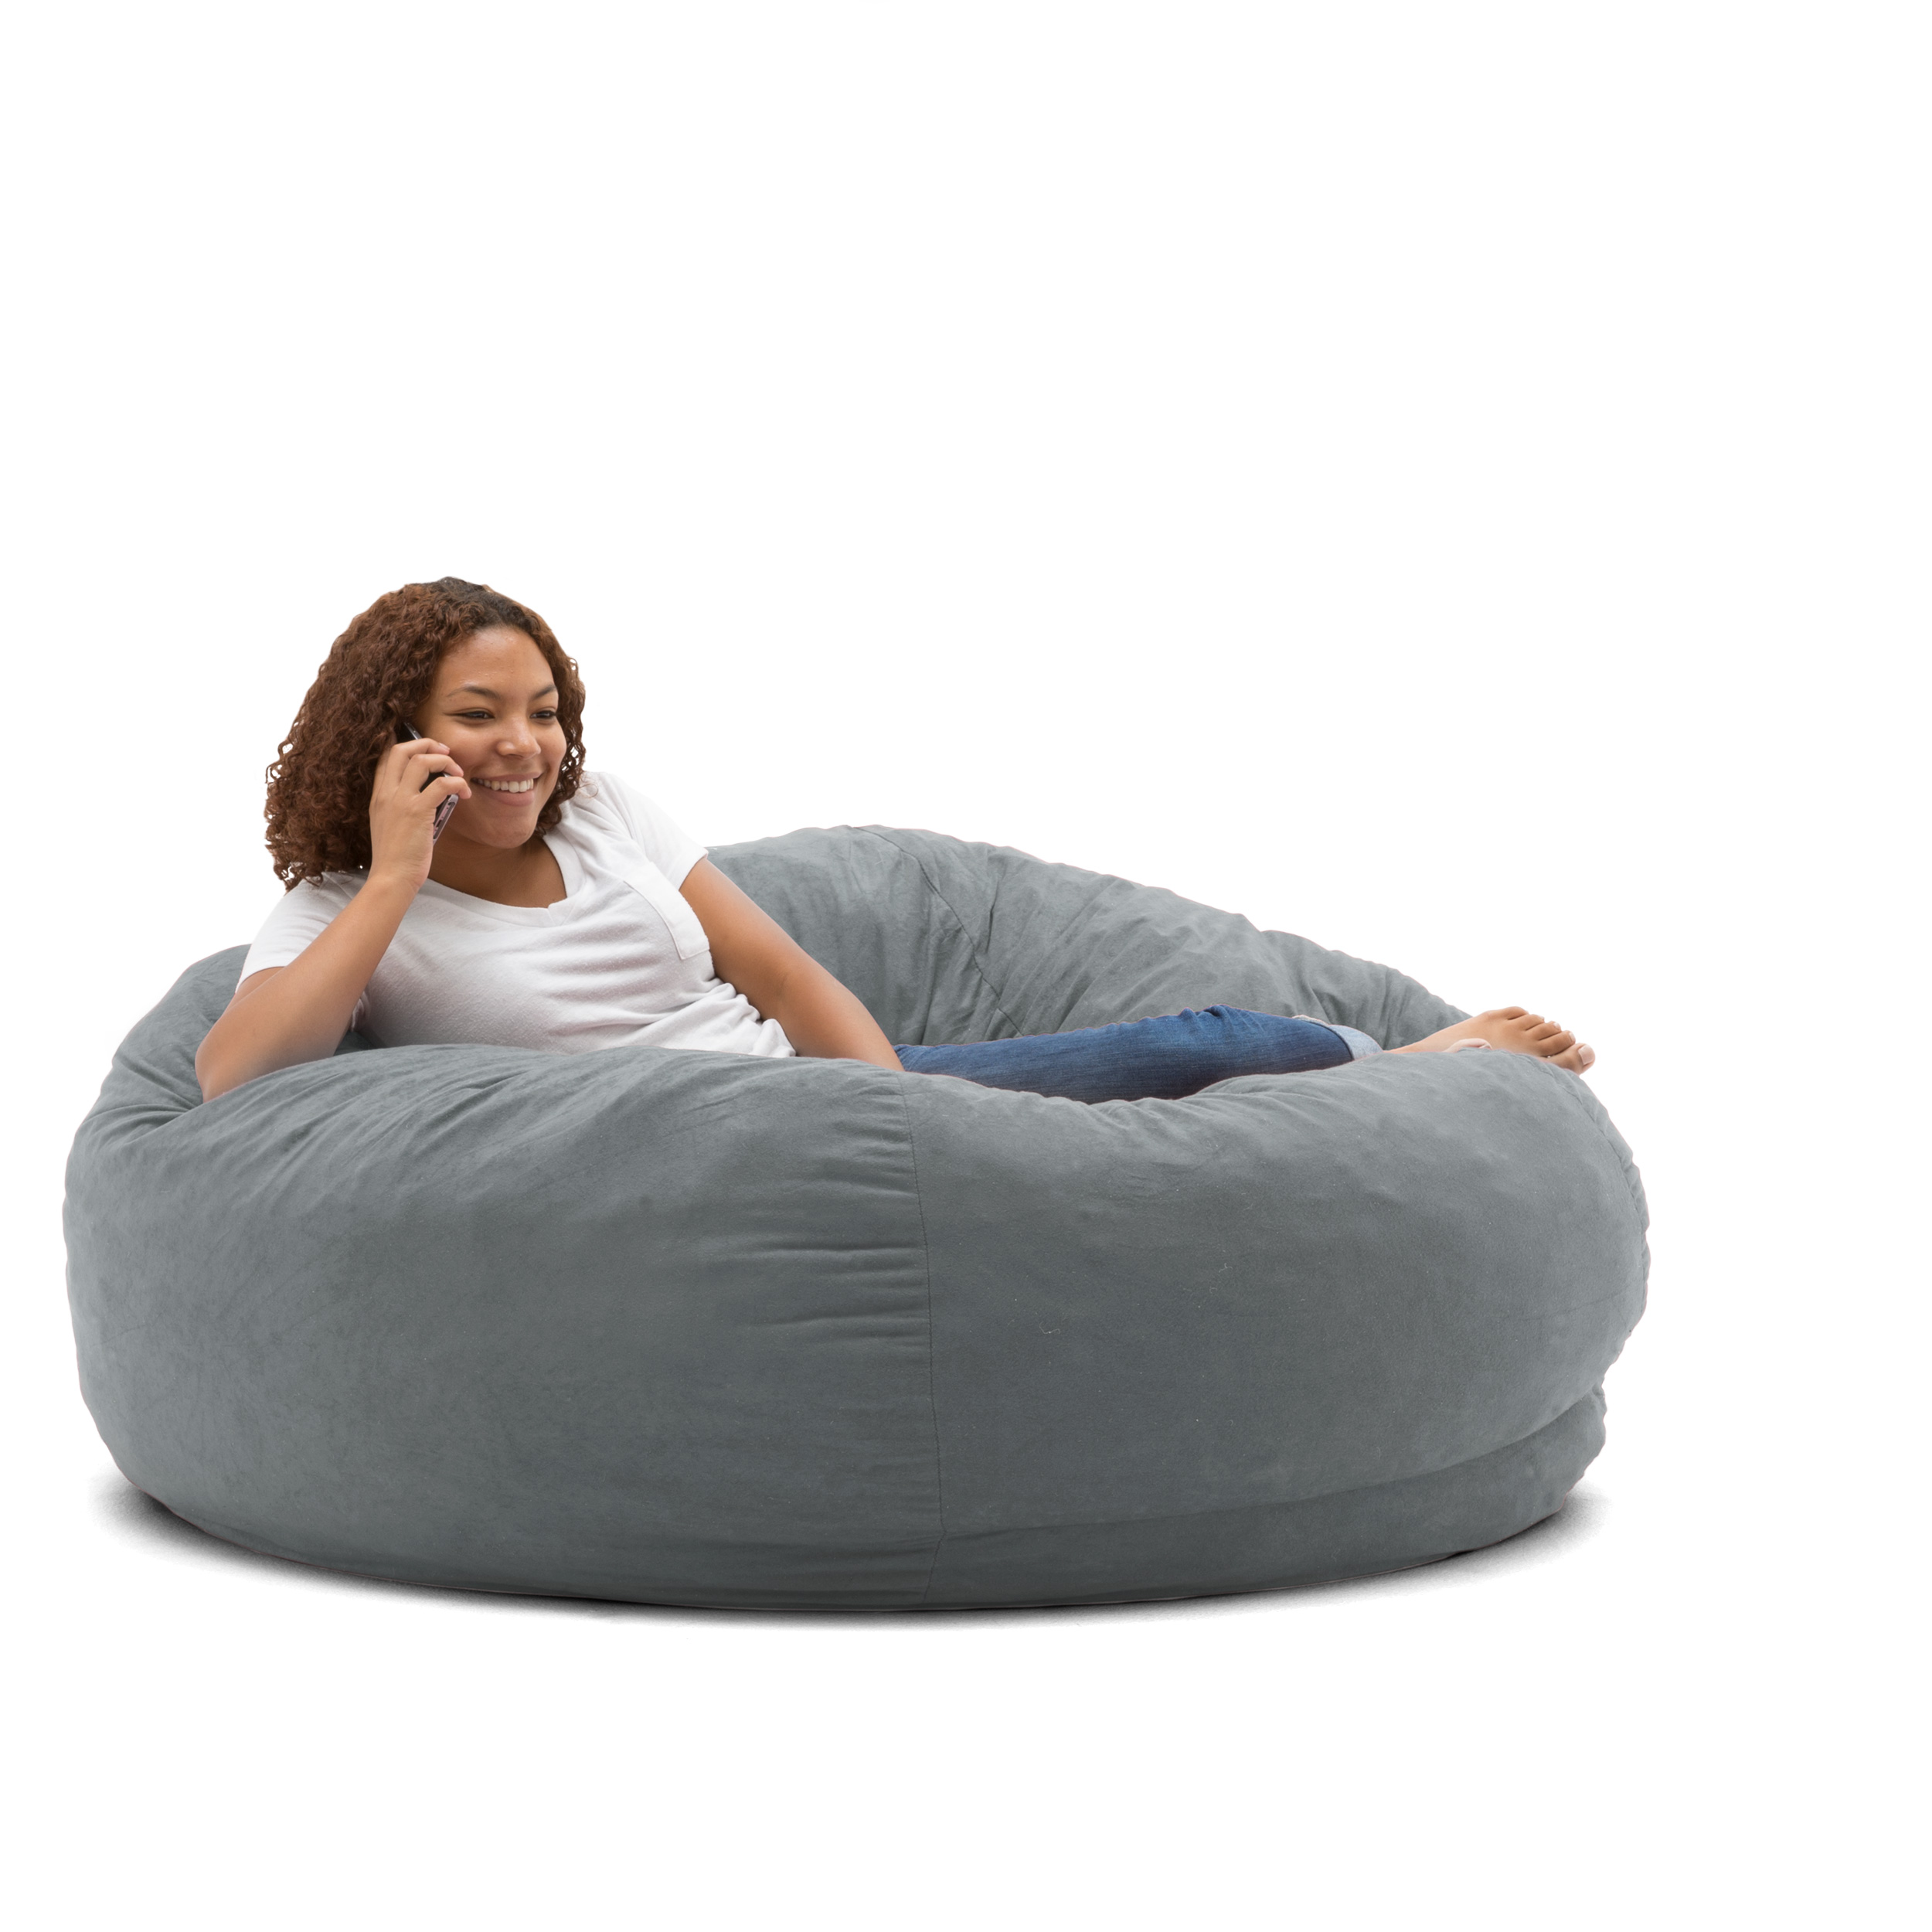 King 5' Fuf Comfort Suede Bean Bag Chair, Multiple Colors - Walmart.com